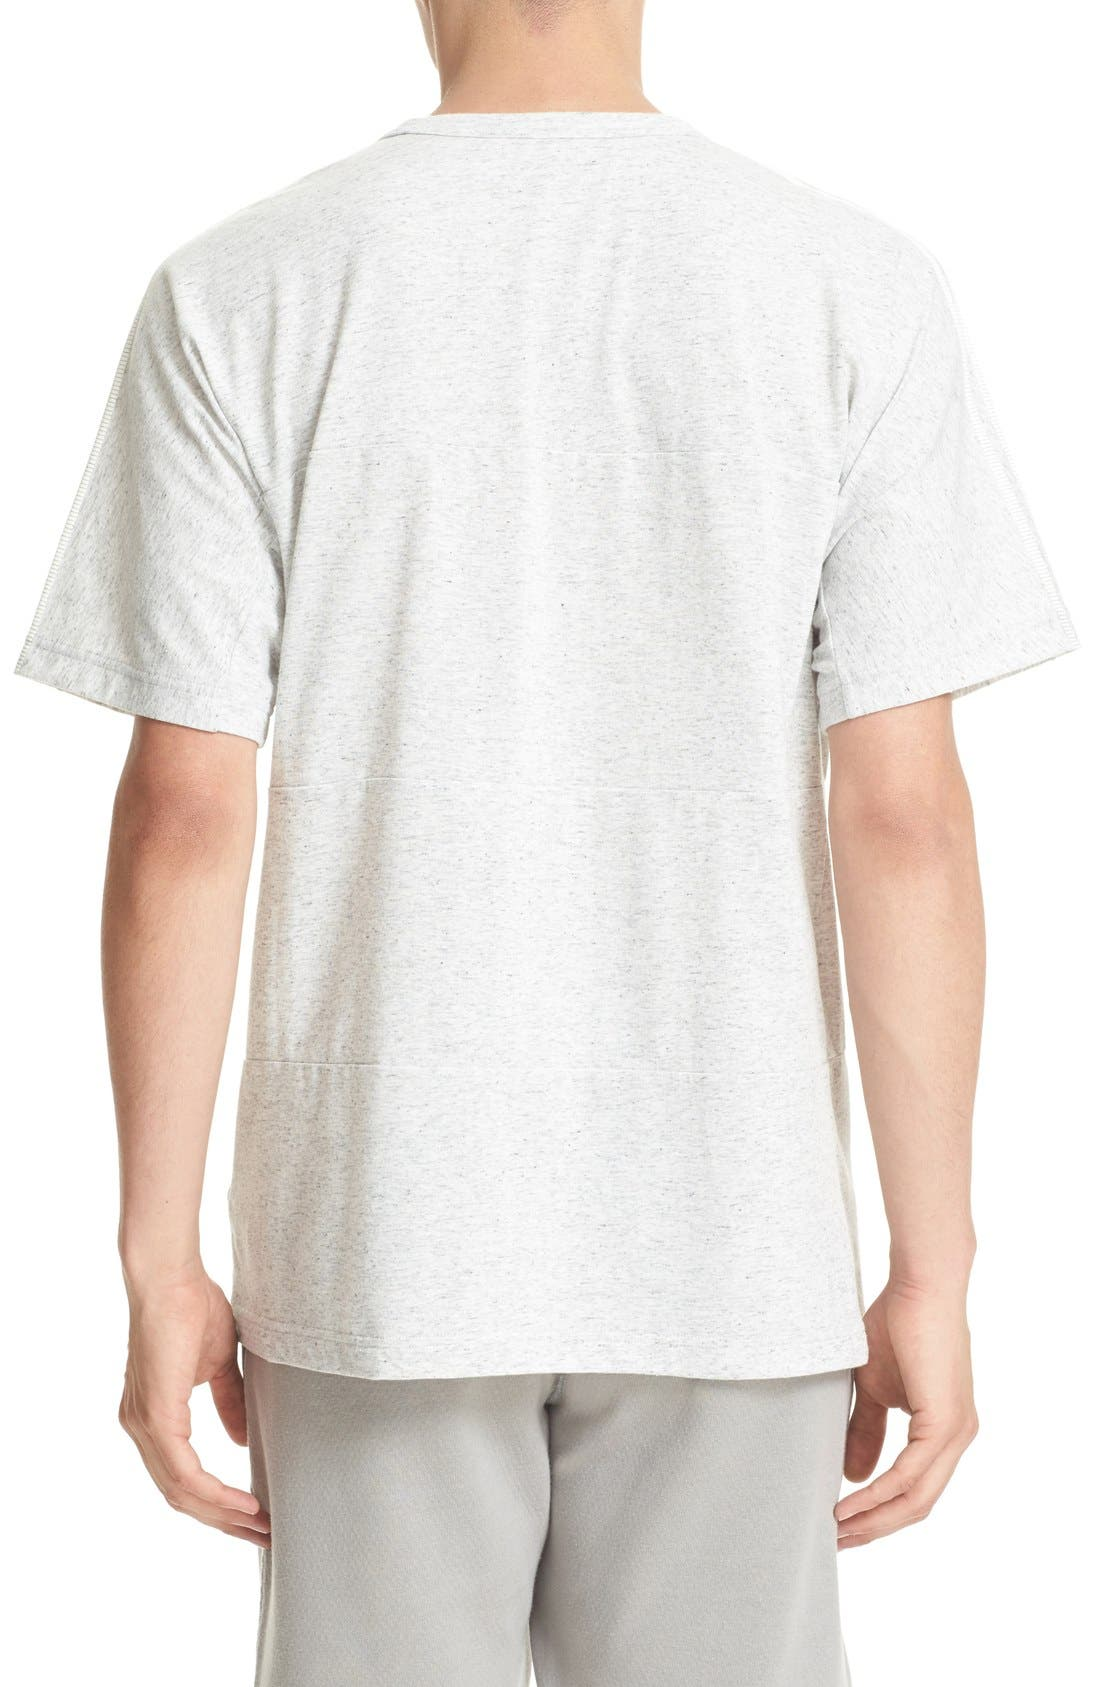 Alternate Image 2  - wings + horns x adidas Cotton Blend T-Shirt